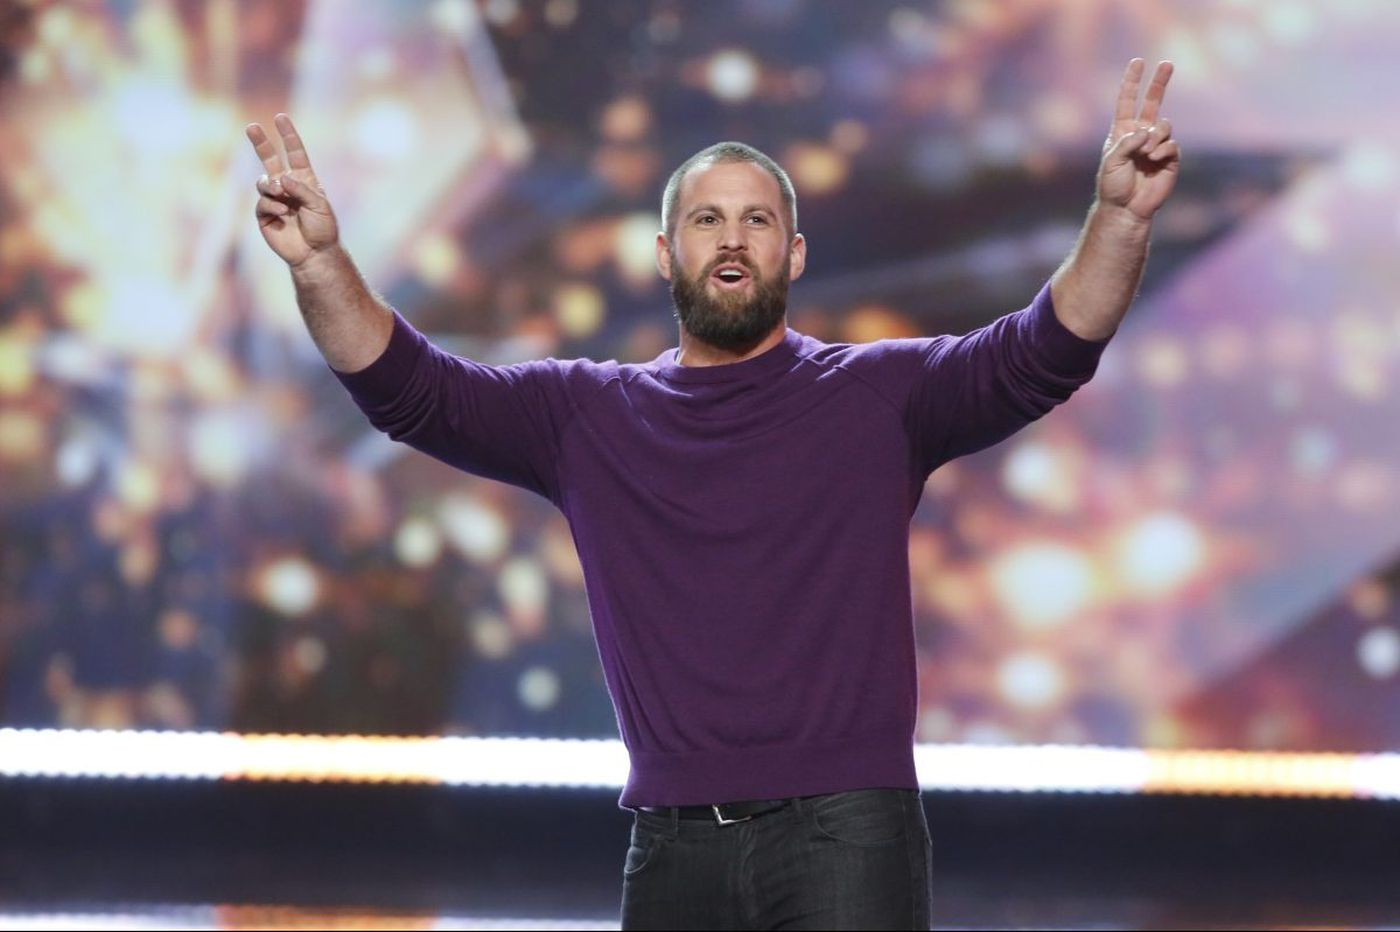 Jon Dorenbos is coming back to Philly for one night only